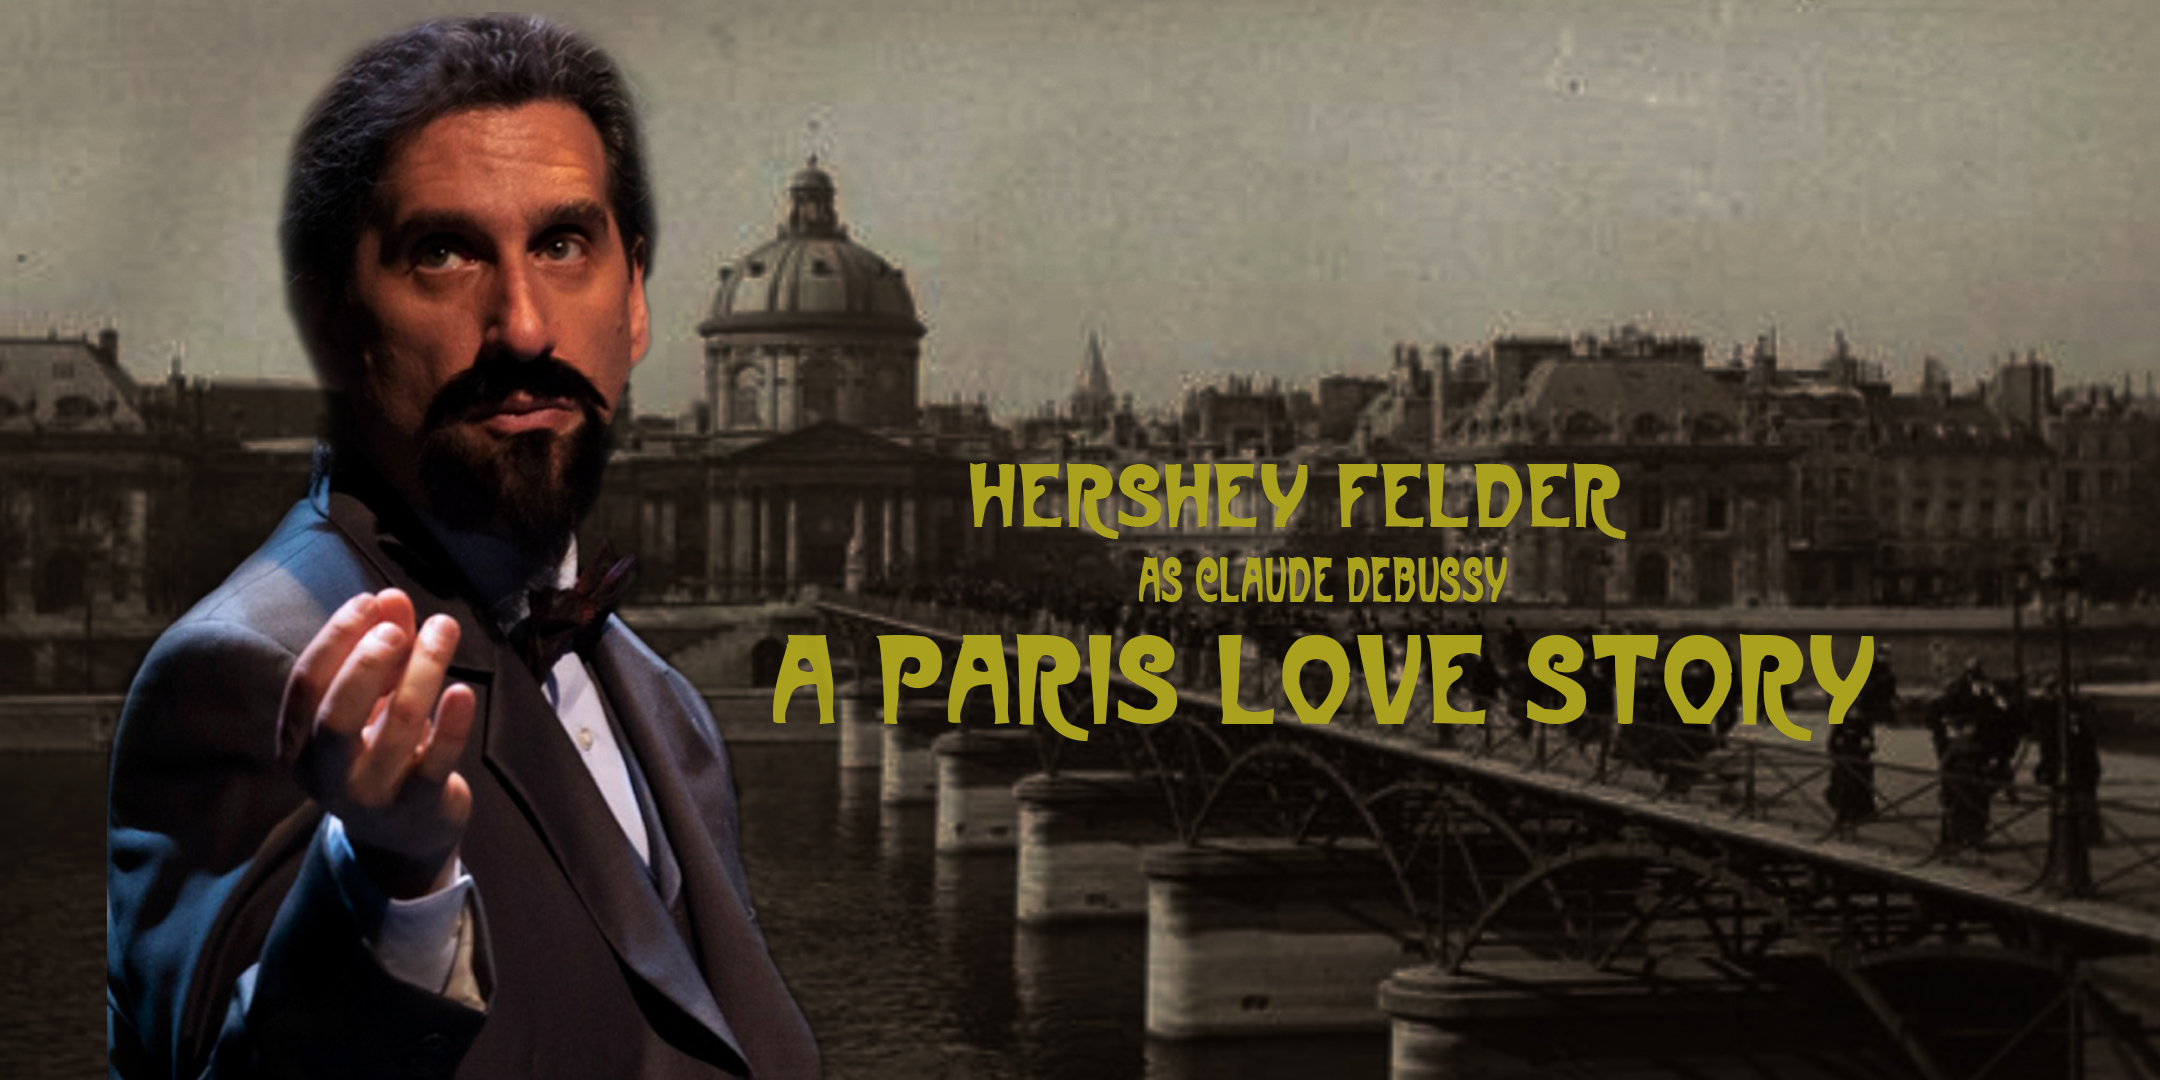 """Hershey Felder as Claude Debussy in """"A Paris Love Story"""" -- A Recording of the Live-Streamed Musical Event from Florence"""